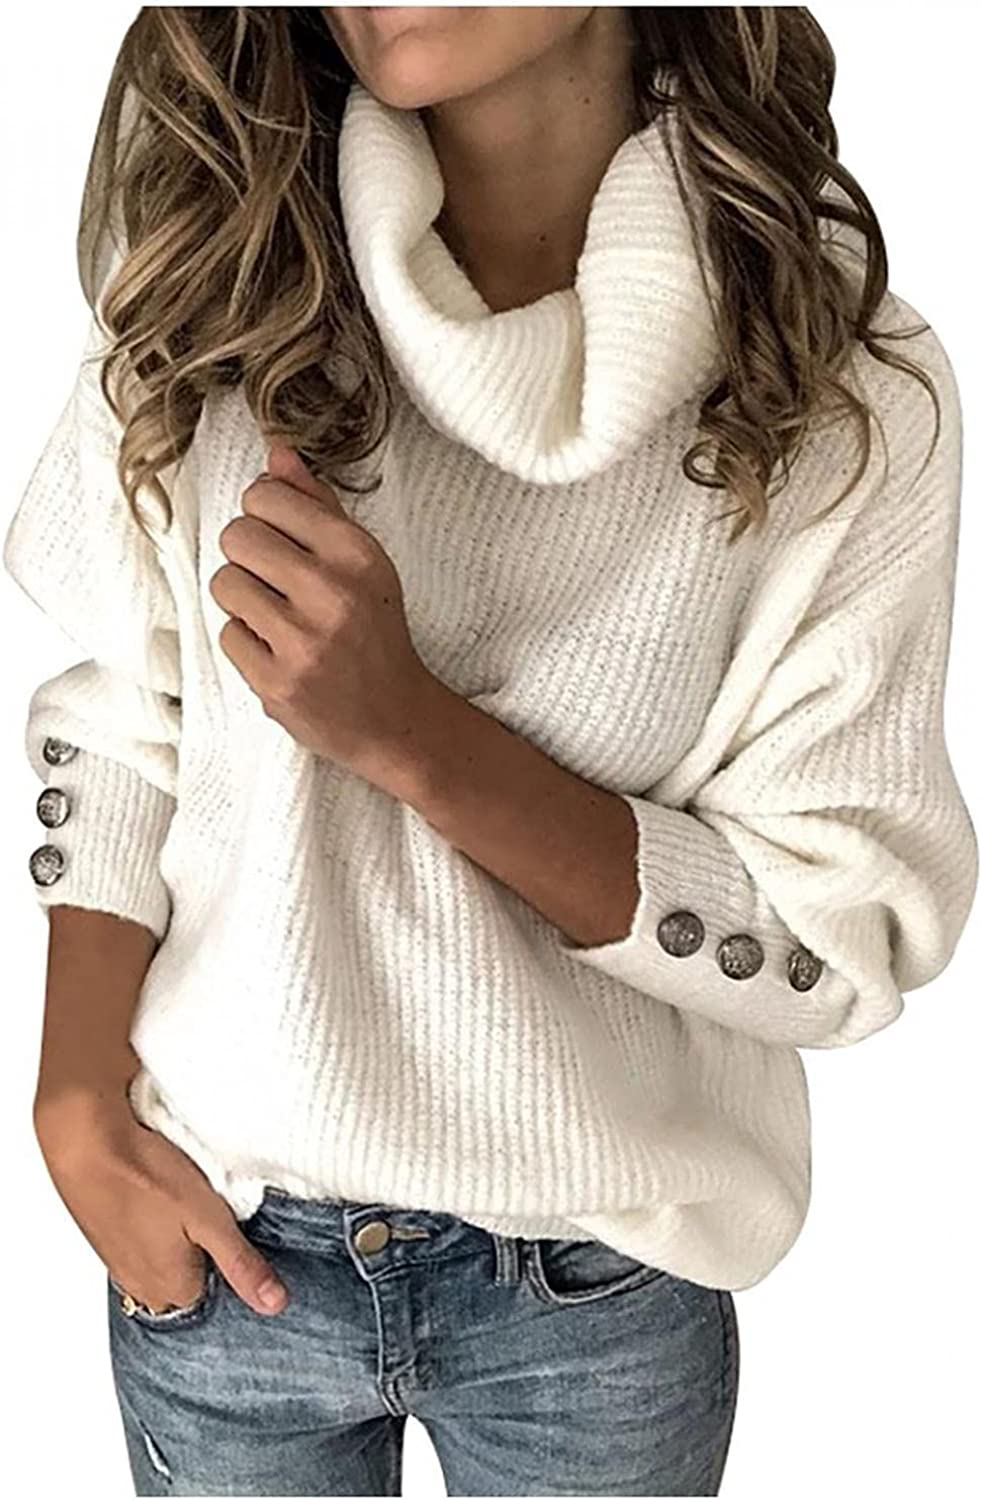 YMADREIG Sweaters for Women Fashion Solid Color Pullover Elegant Knitted Turtleneck Casual Loose Long Sleeve Soft Tops Blouse